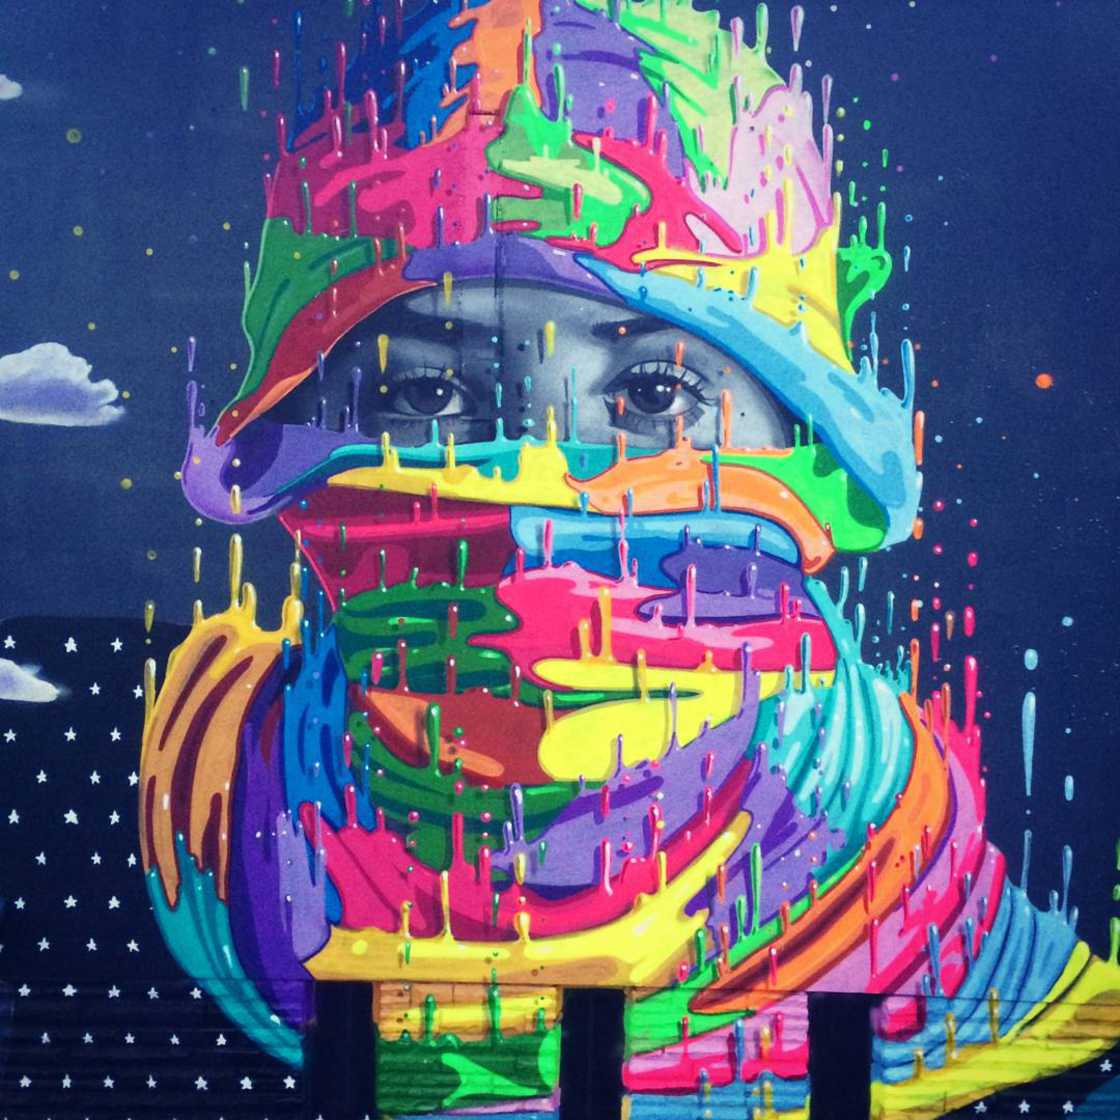 Dripping Colors - The impressive street art of Dasic Fernandez